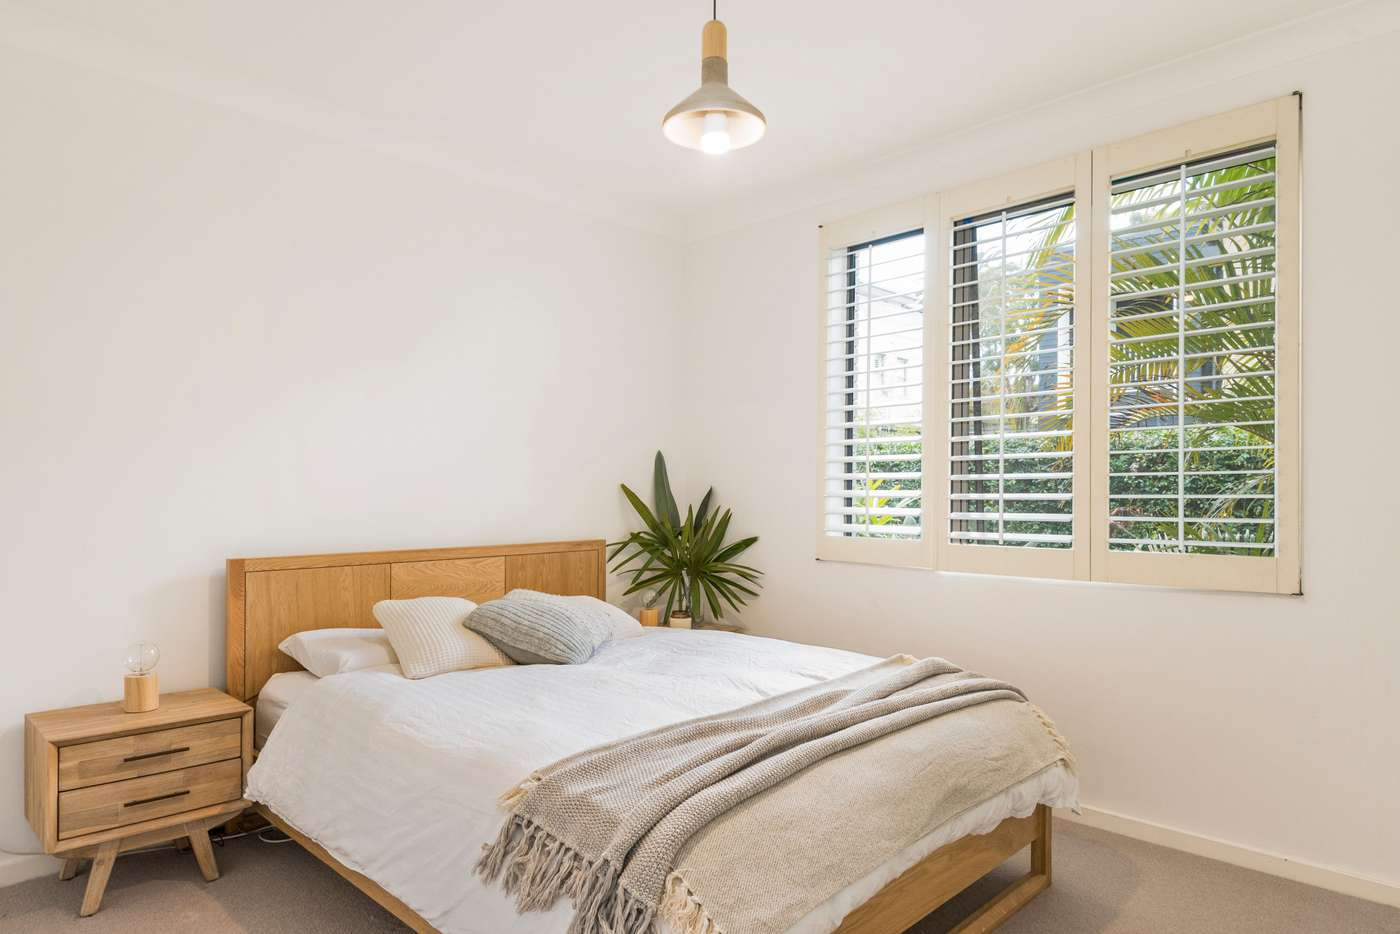 Fifth view of Homely apartment listing, 9/6 Bannerman Street, Cremorne NSW 2090